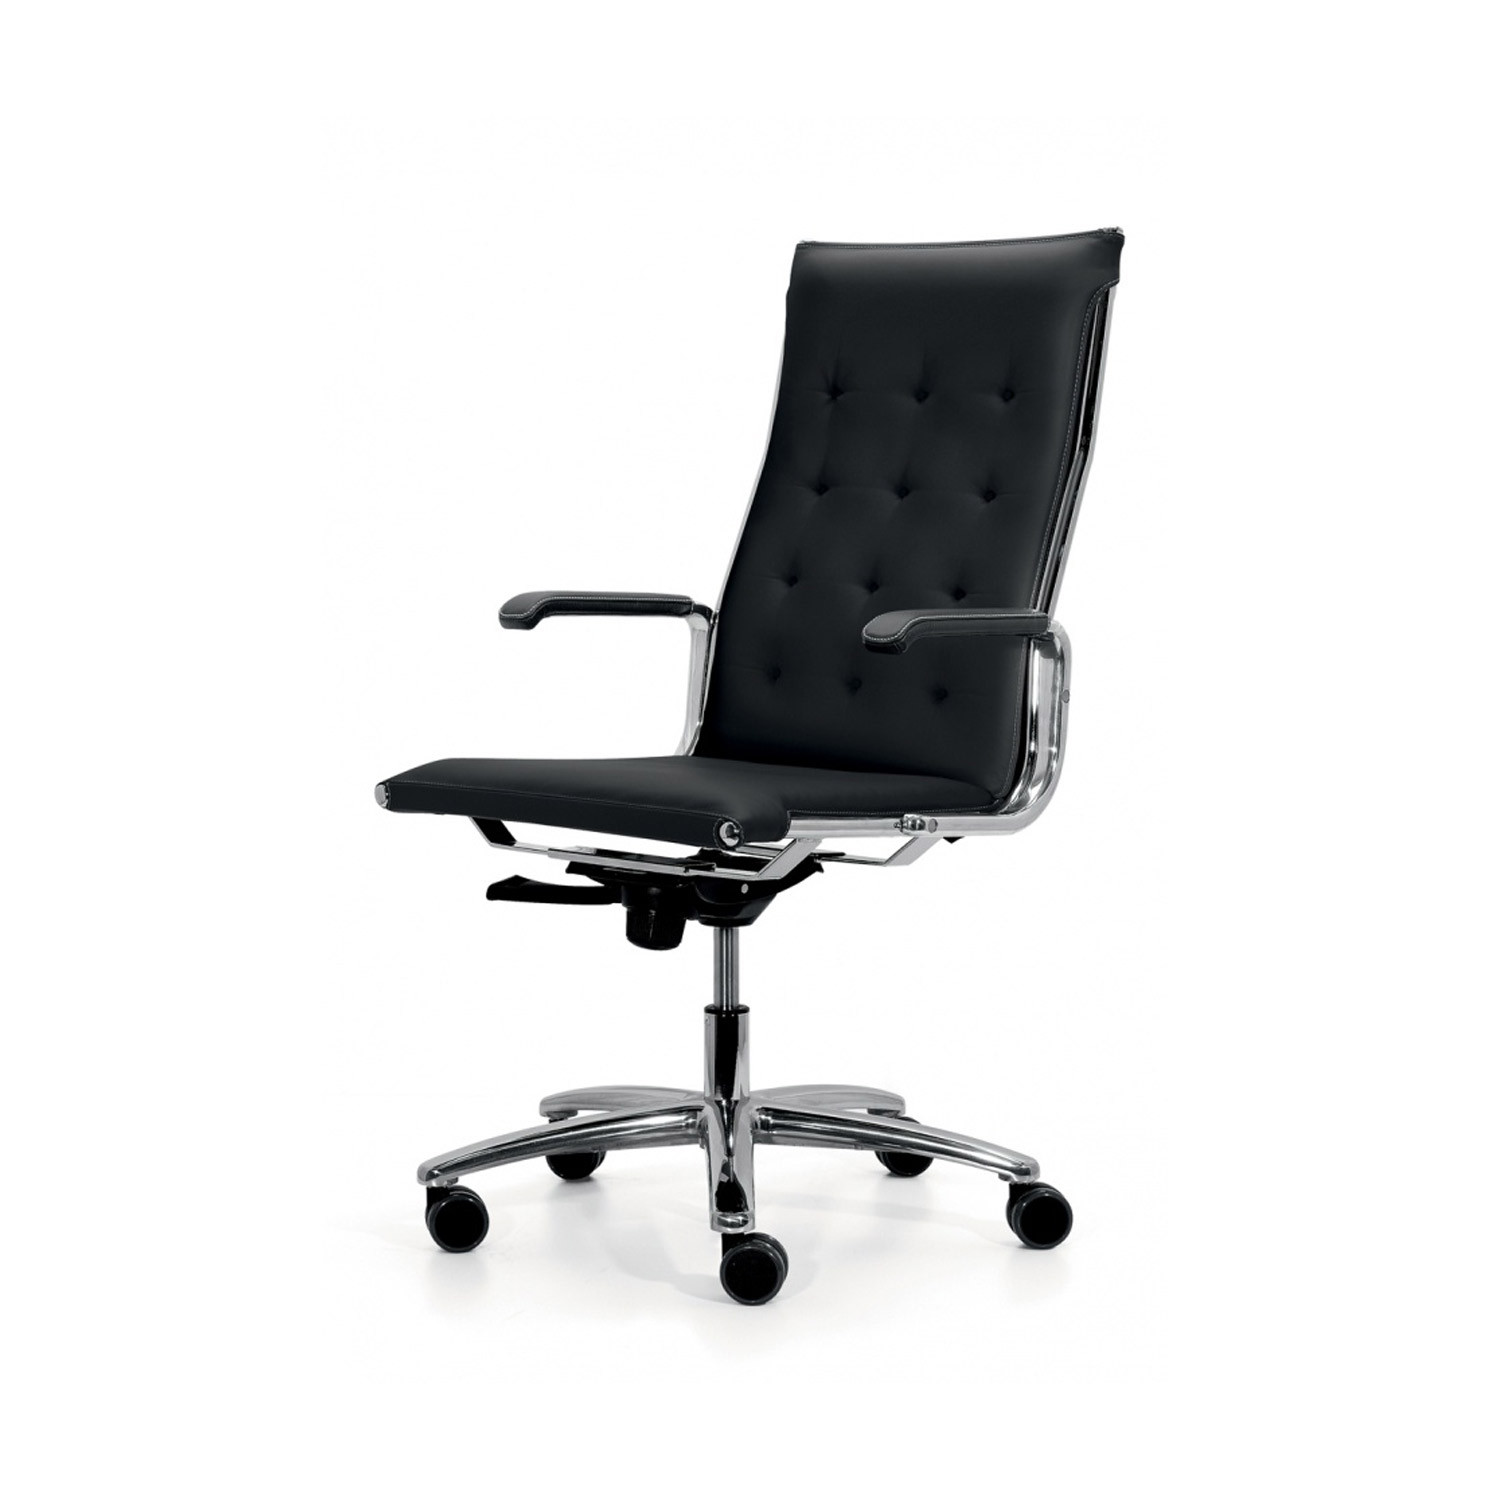 Taylord Chair 11000